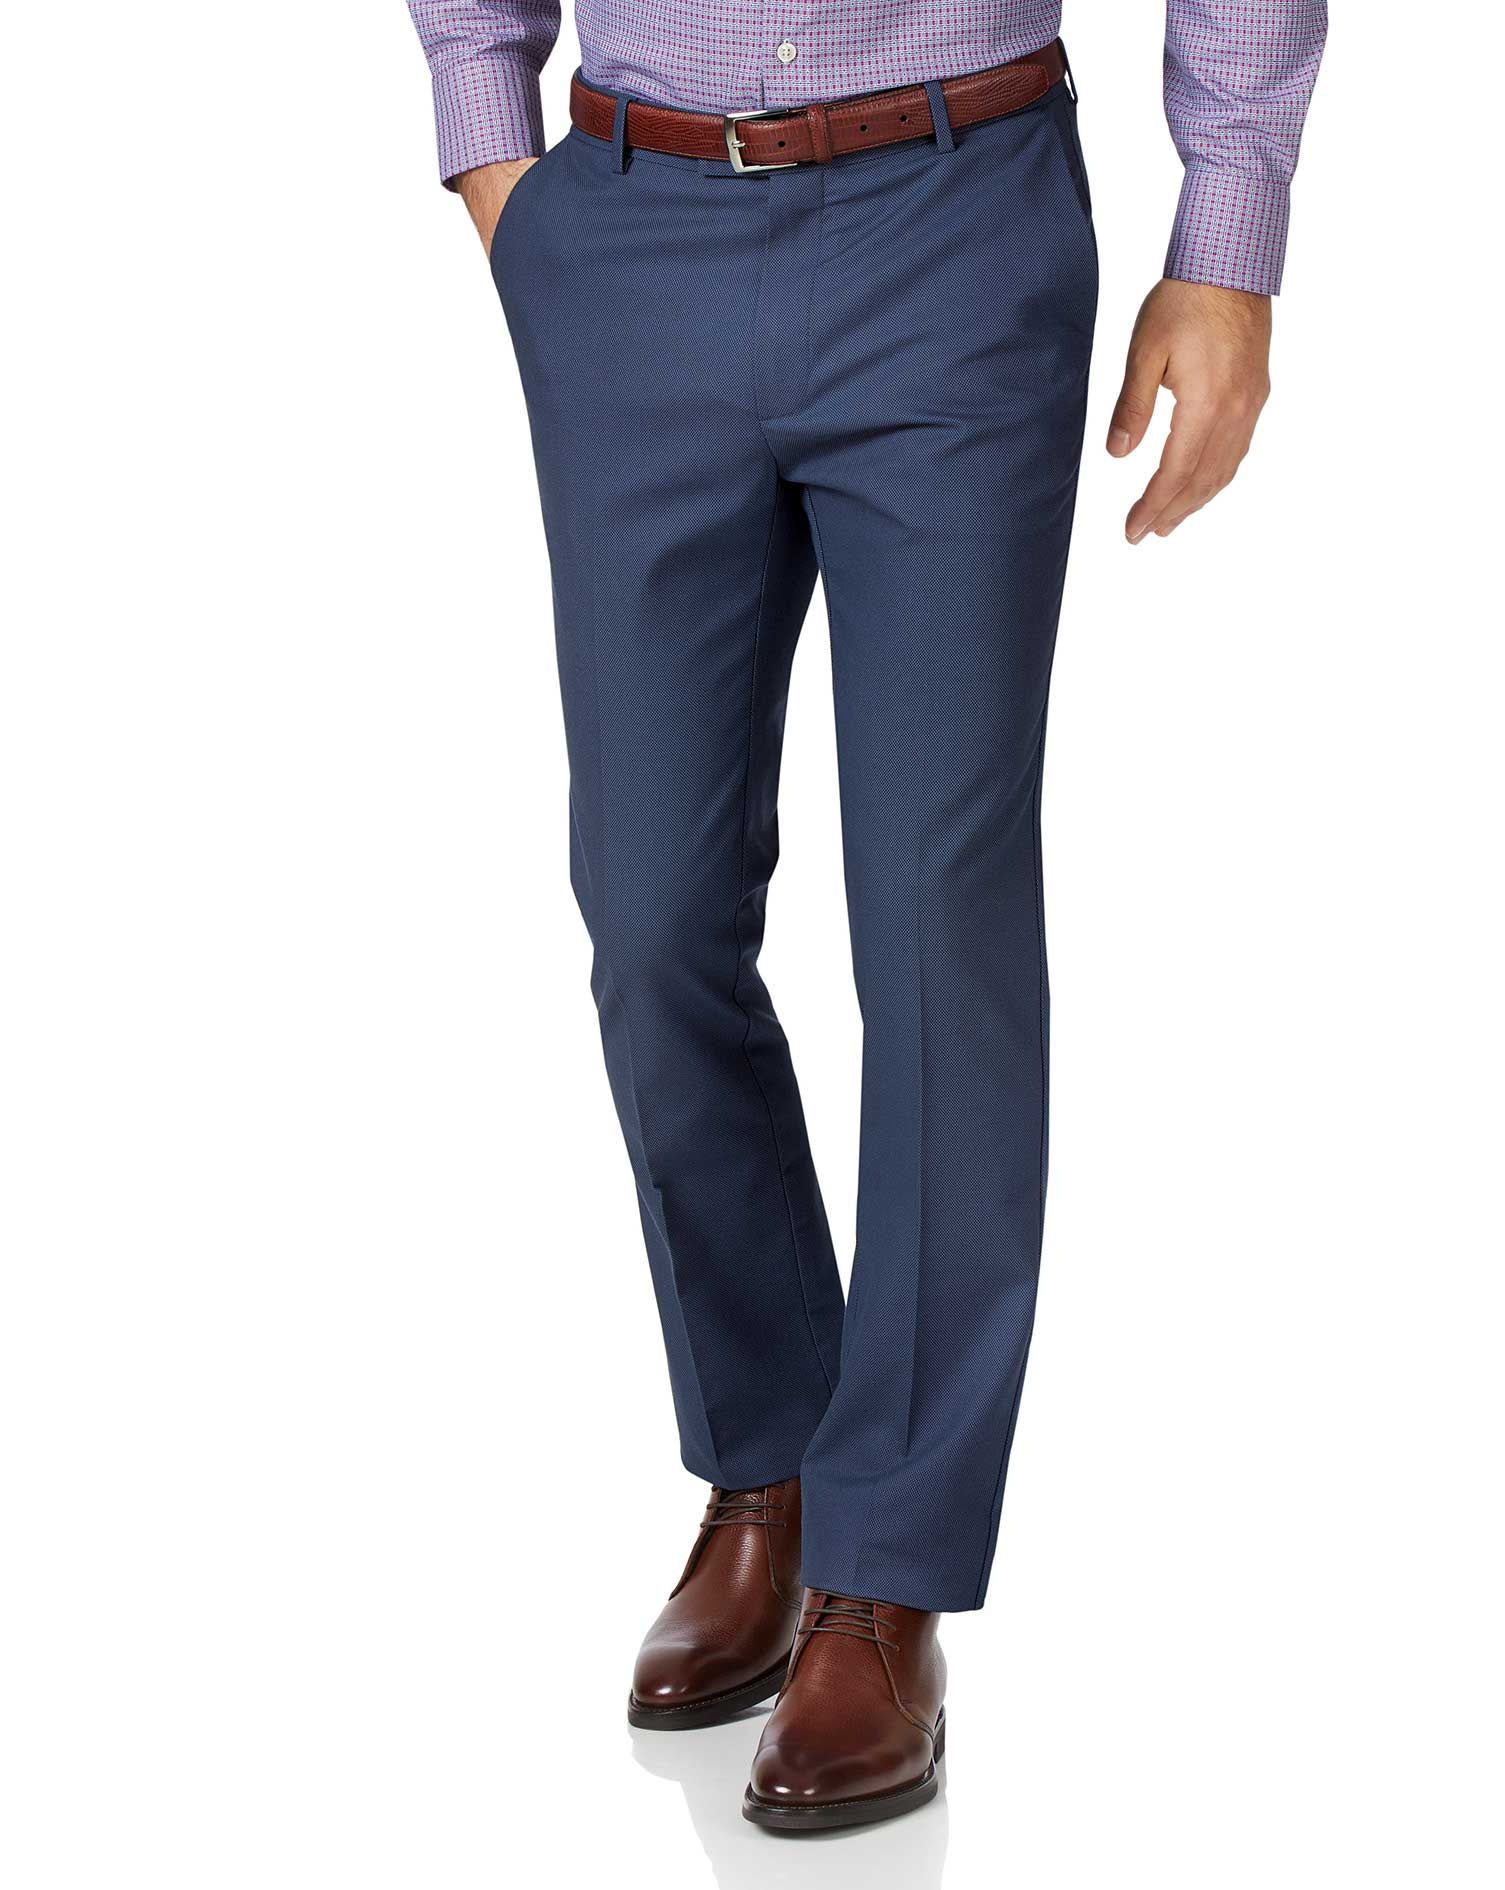 Blue Slim Fit Stretch Non-Iron Trousers Size W32 L34 by Charles Tyrwhitt